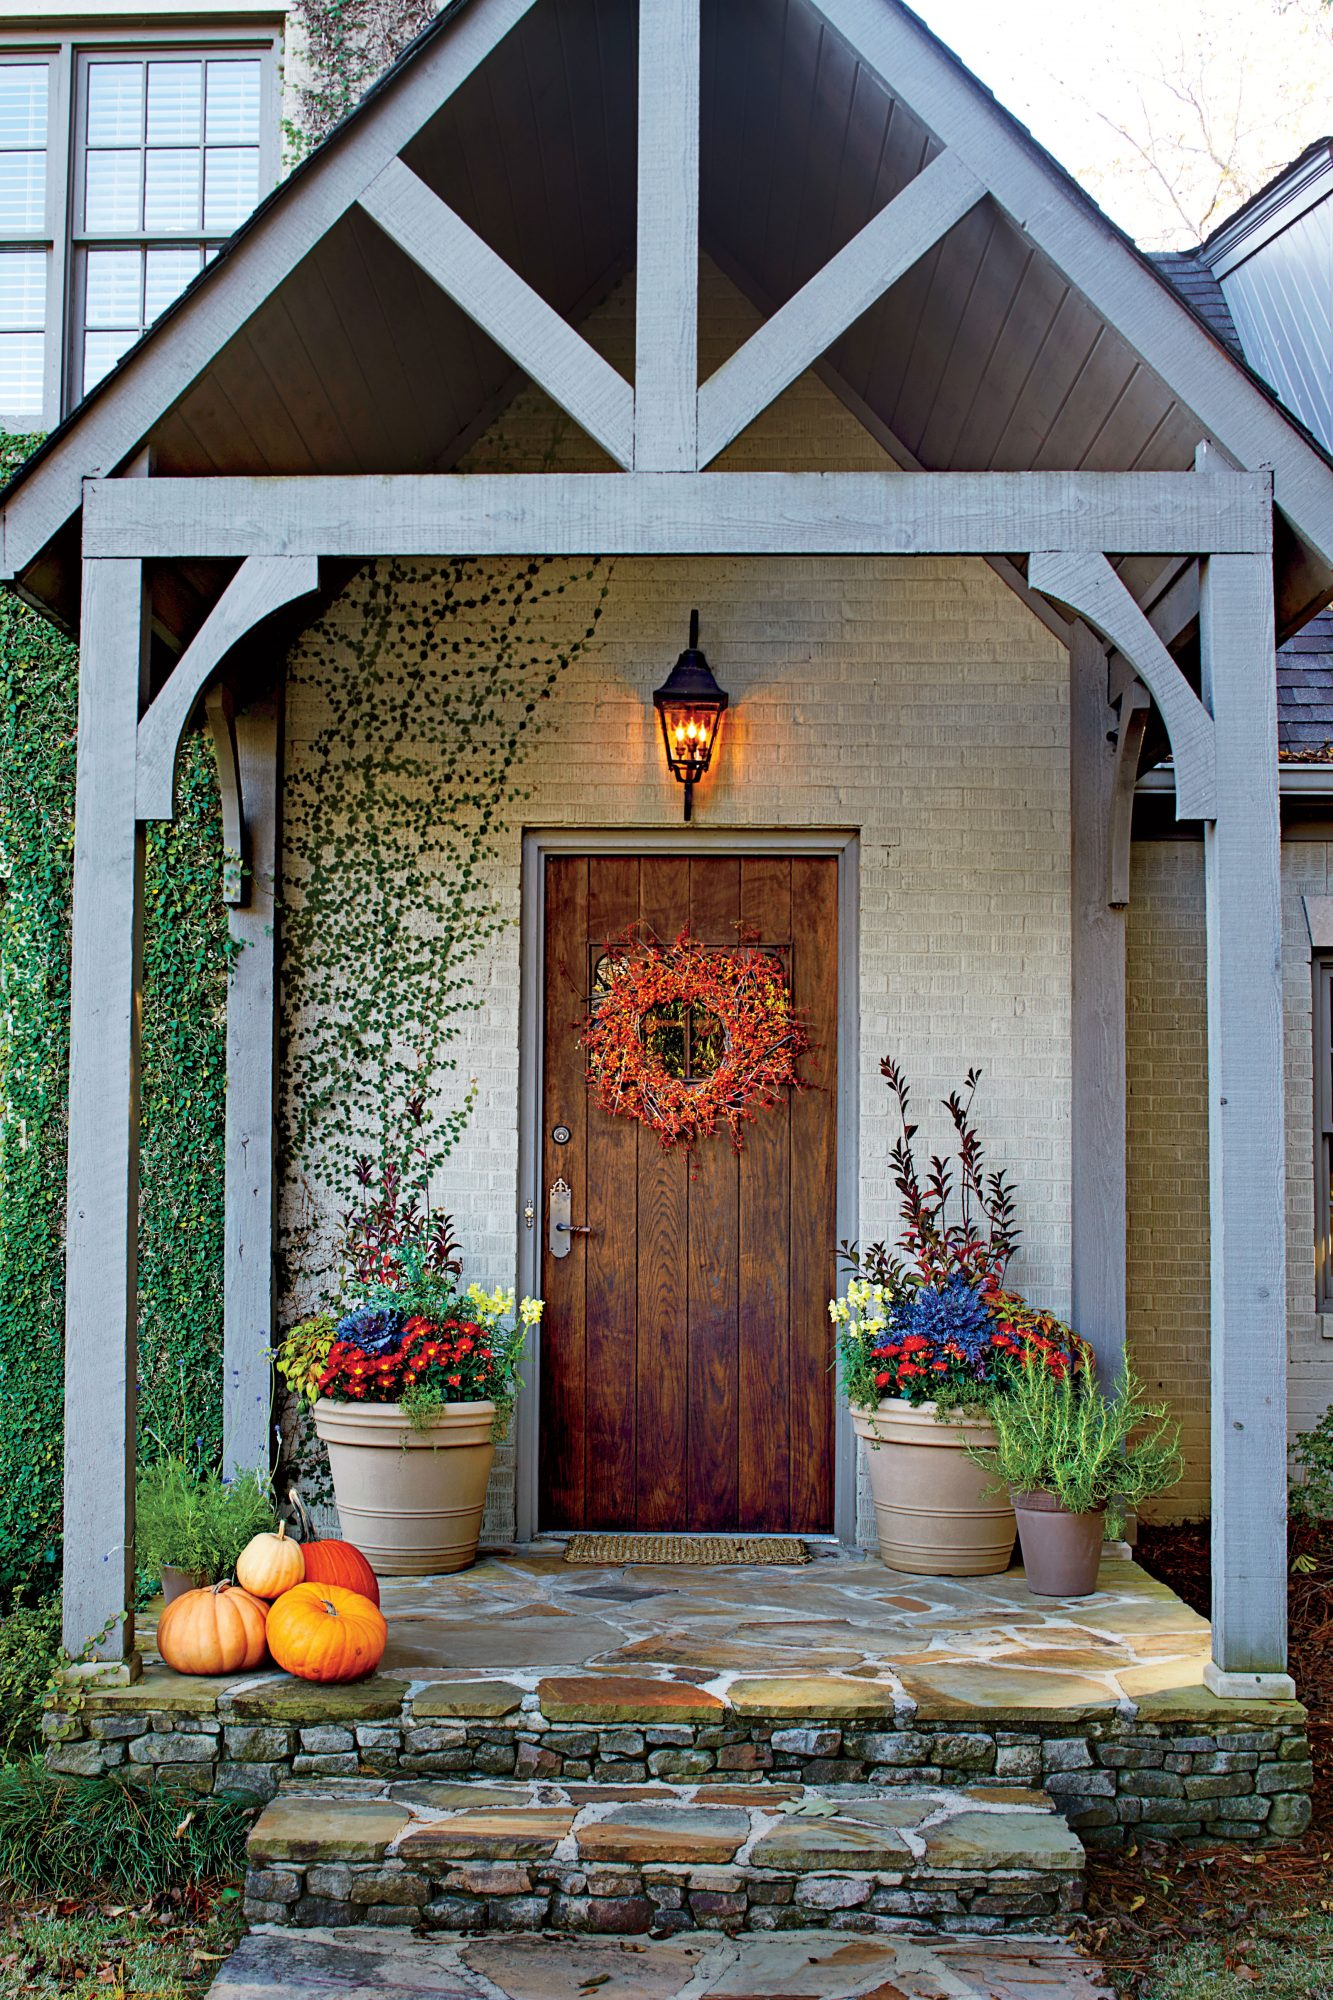 16 Ways to Spice Up Your Porch Décor for Fall - Southern Living